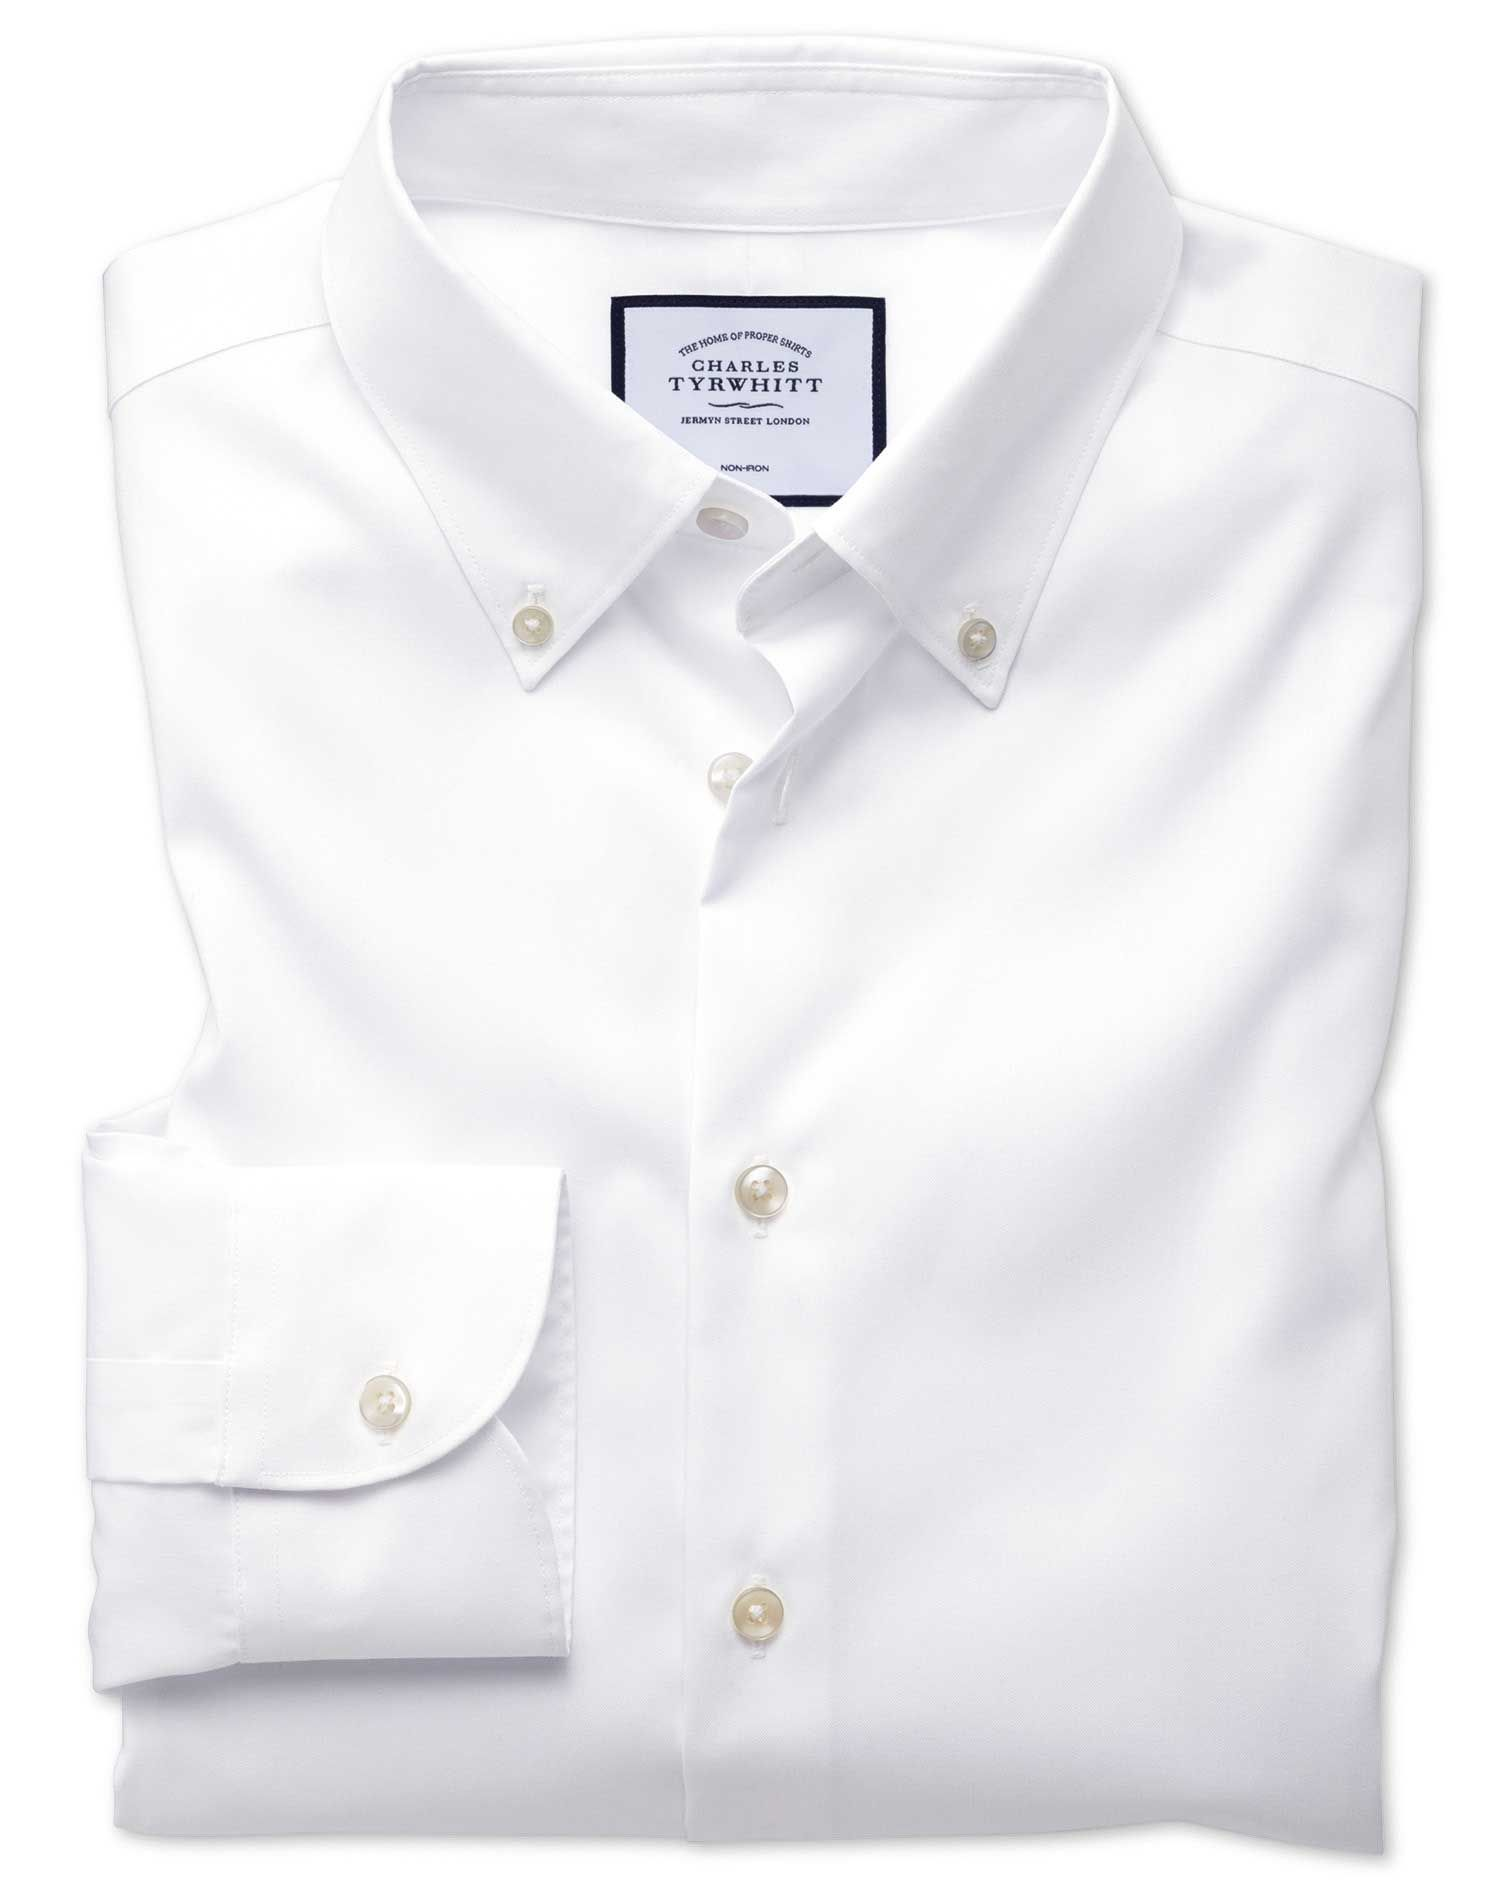 513c7896 The 8 Best White Dress Shirts to Buy in 2019